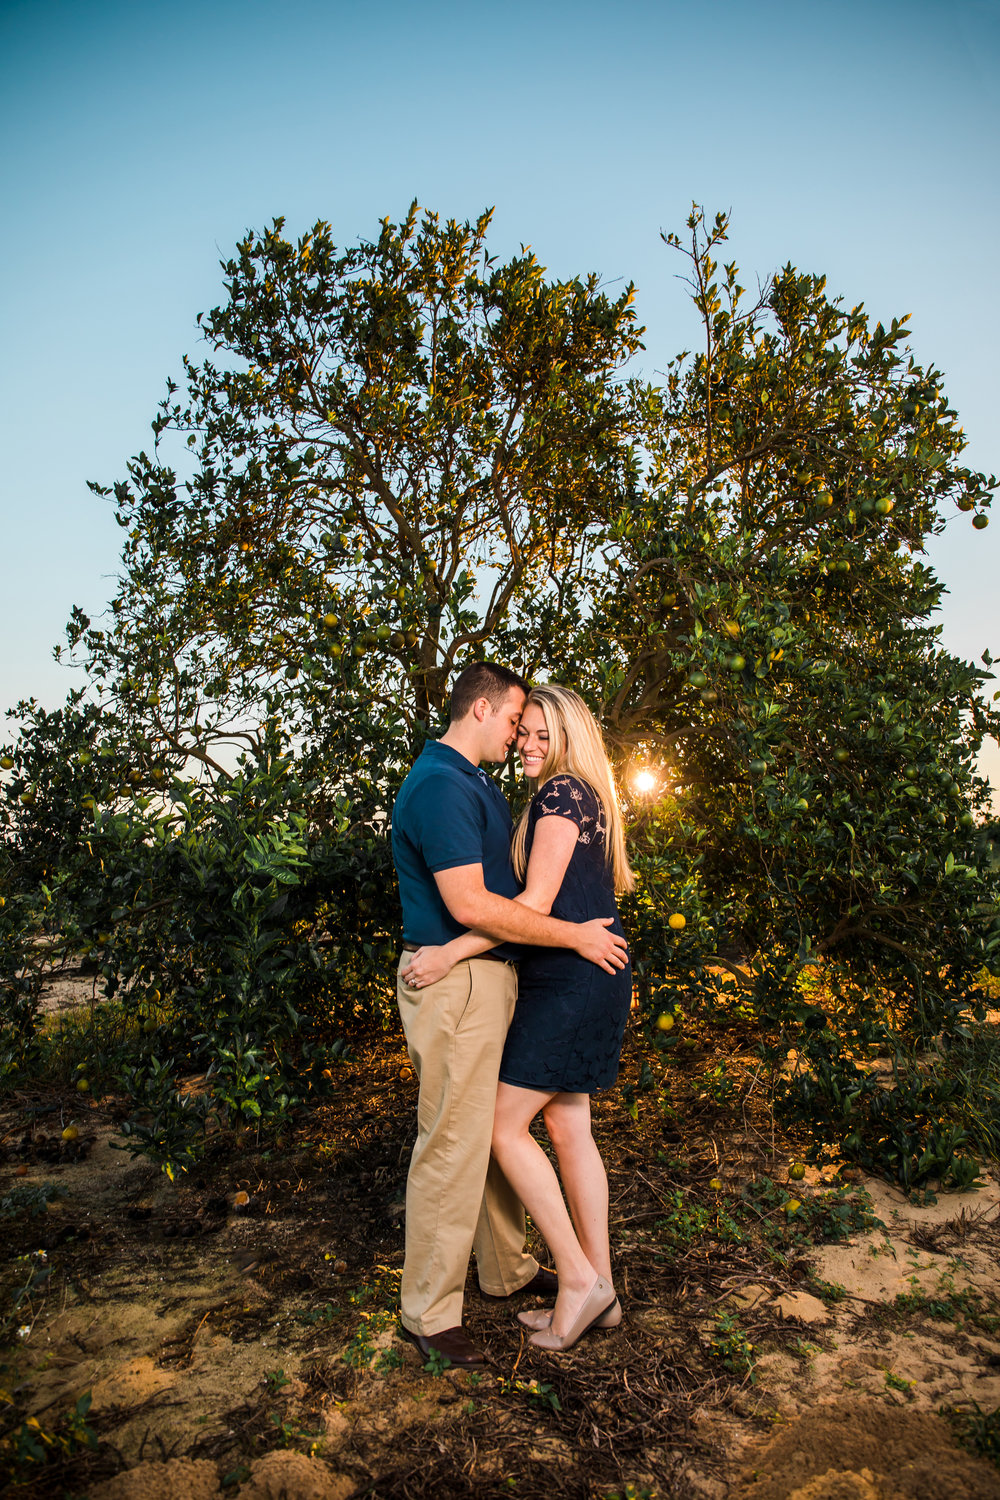 Orlando artistic wedding photographer